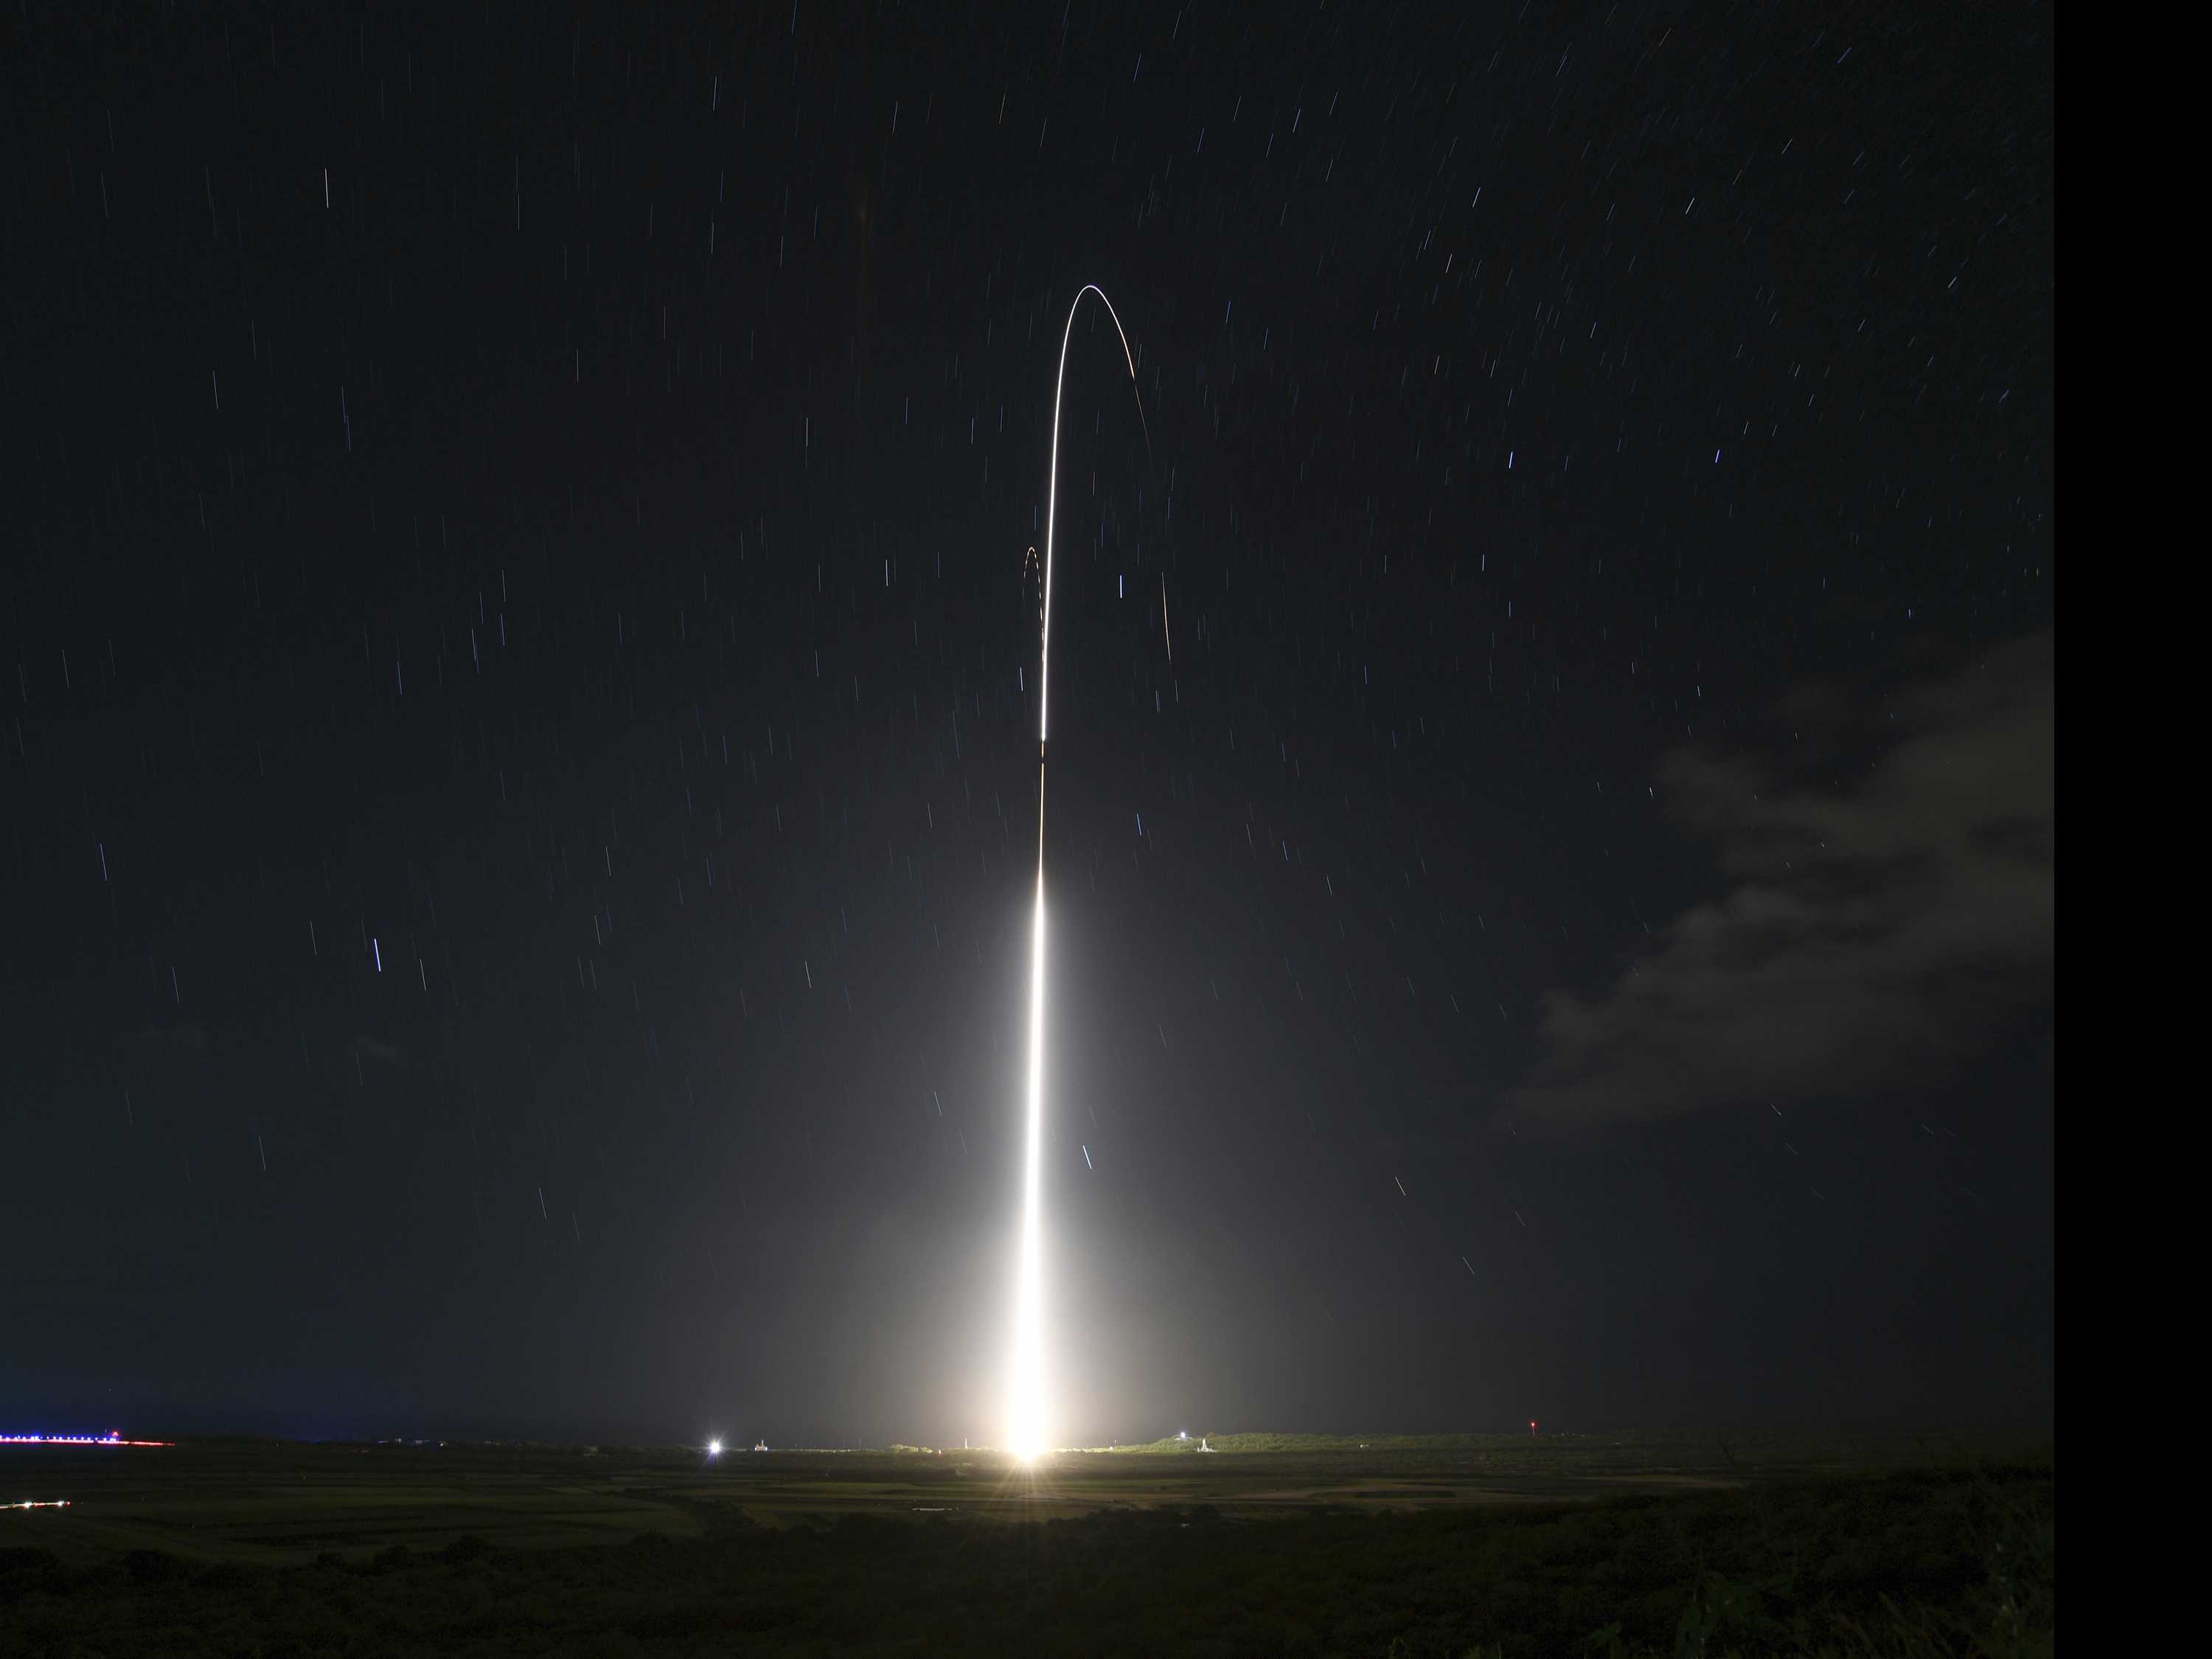 New U.S. Strategy Foresees Sensors in Space to Track Missiles